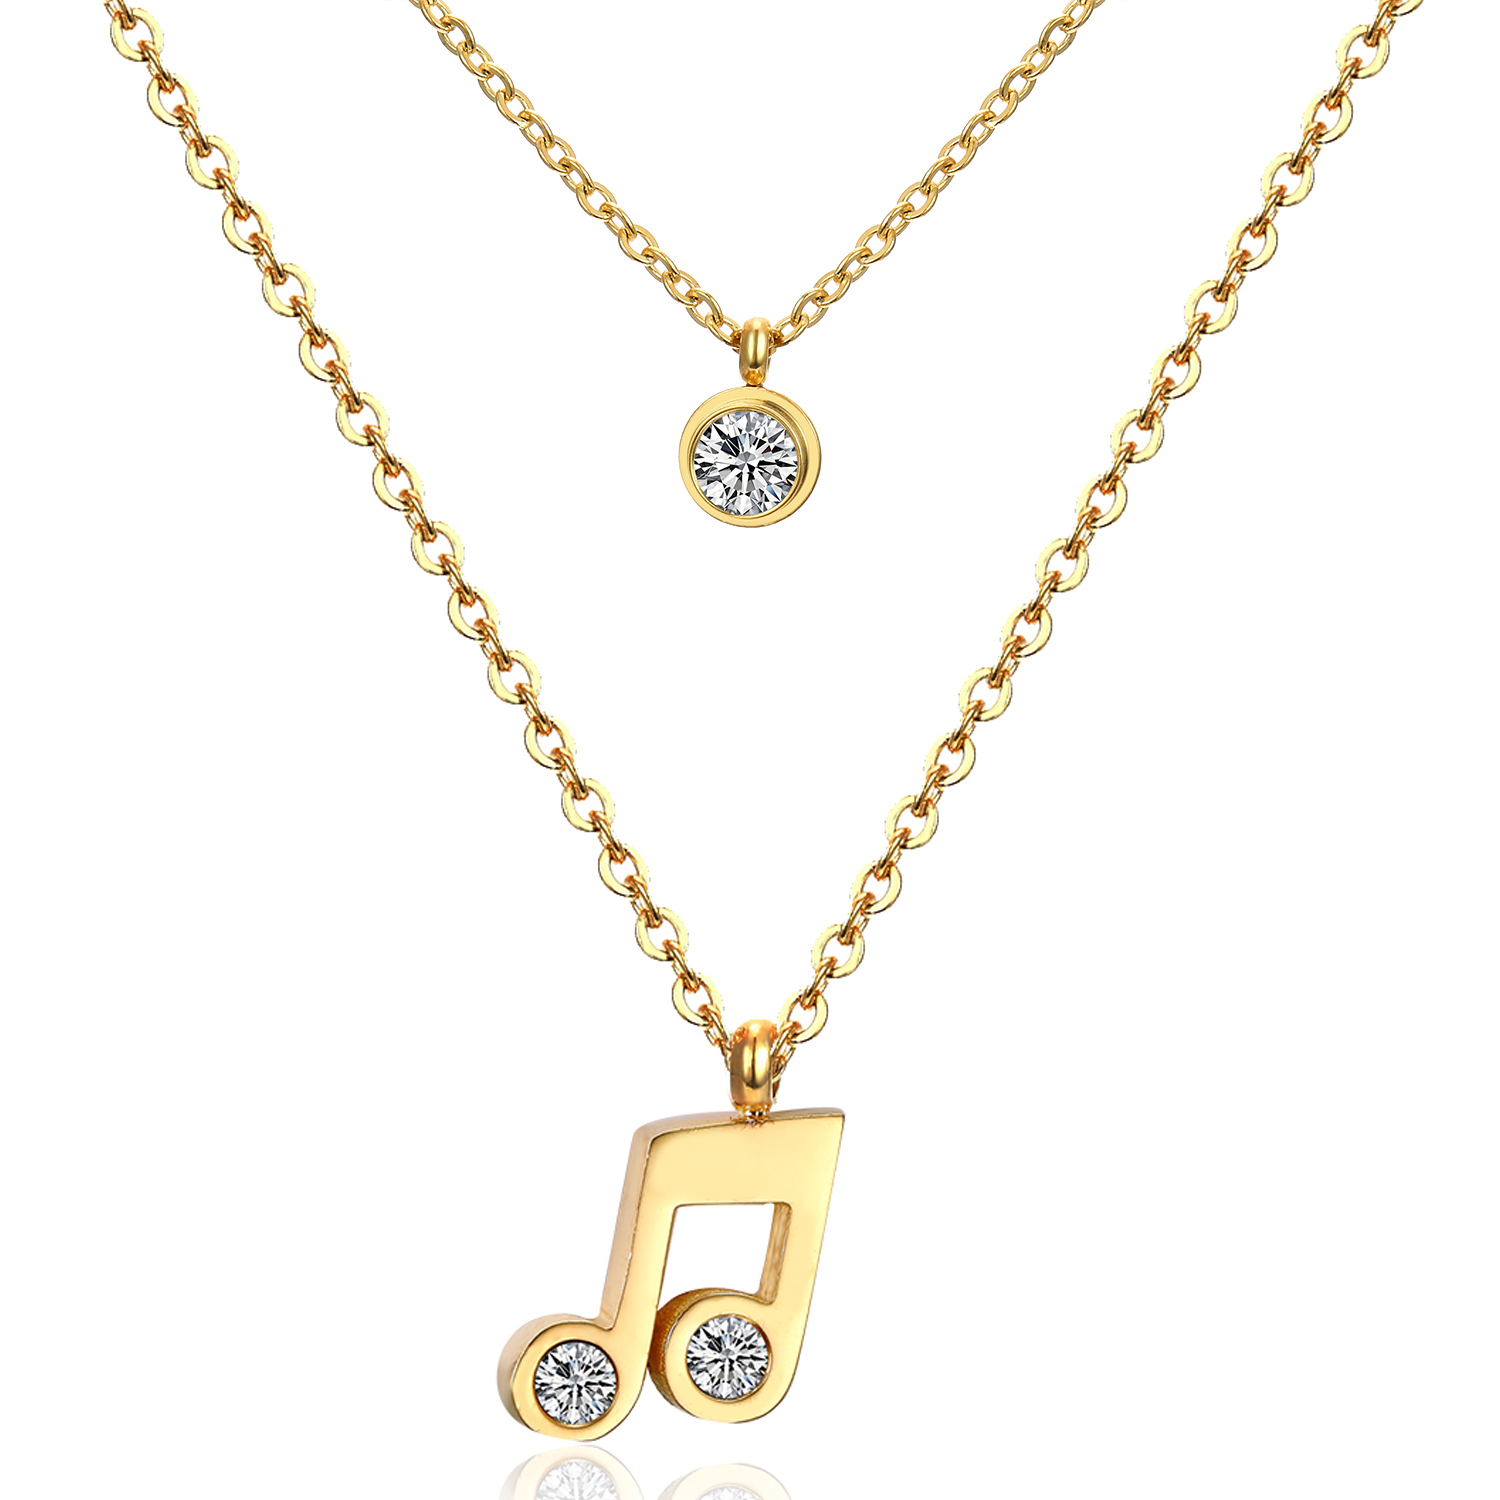 Hot Sale New Crystal Rhinestone Double Music Symbol Pendant Necklace Fashion Metal Chain Double Necklaces Sweater Chain Jewelry(China (Mainland))